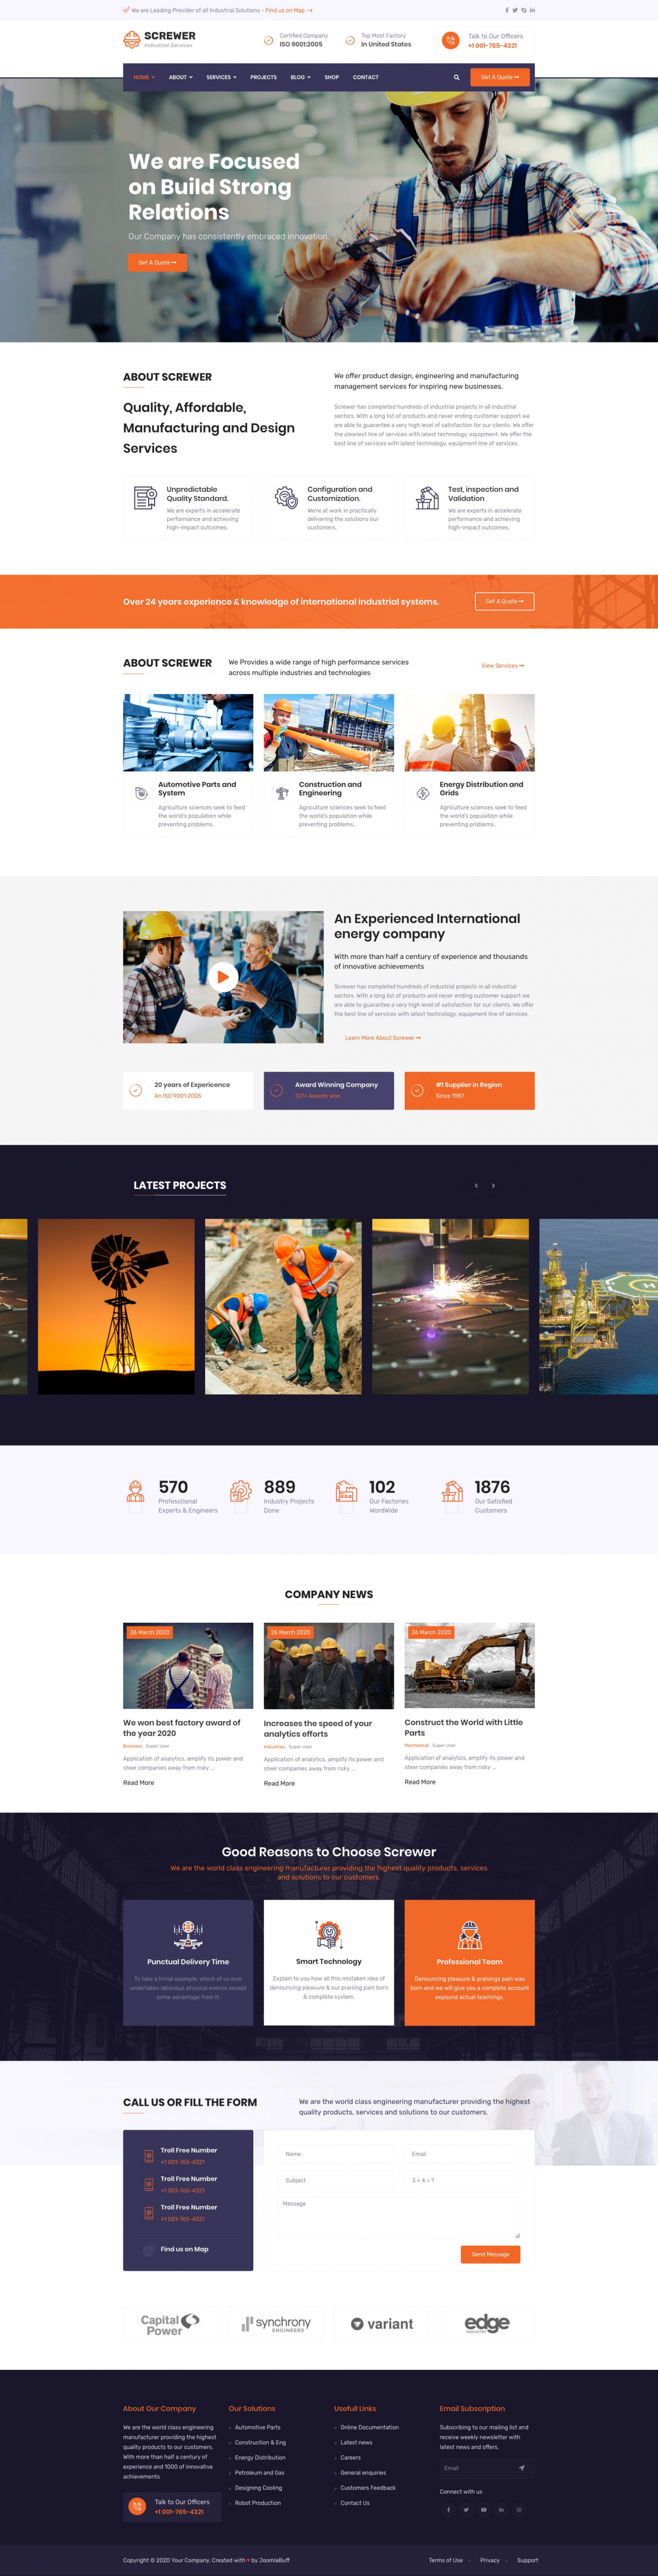 Screwer - Factory and Industrial Business Joomla Template